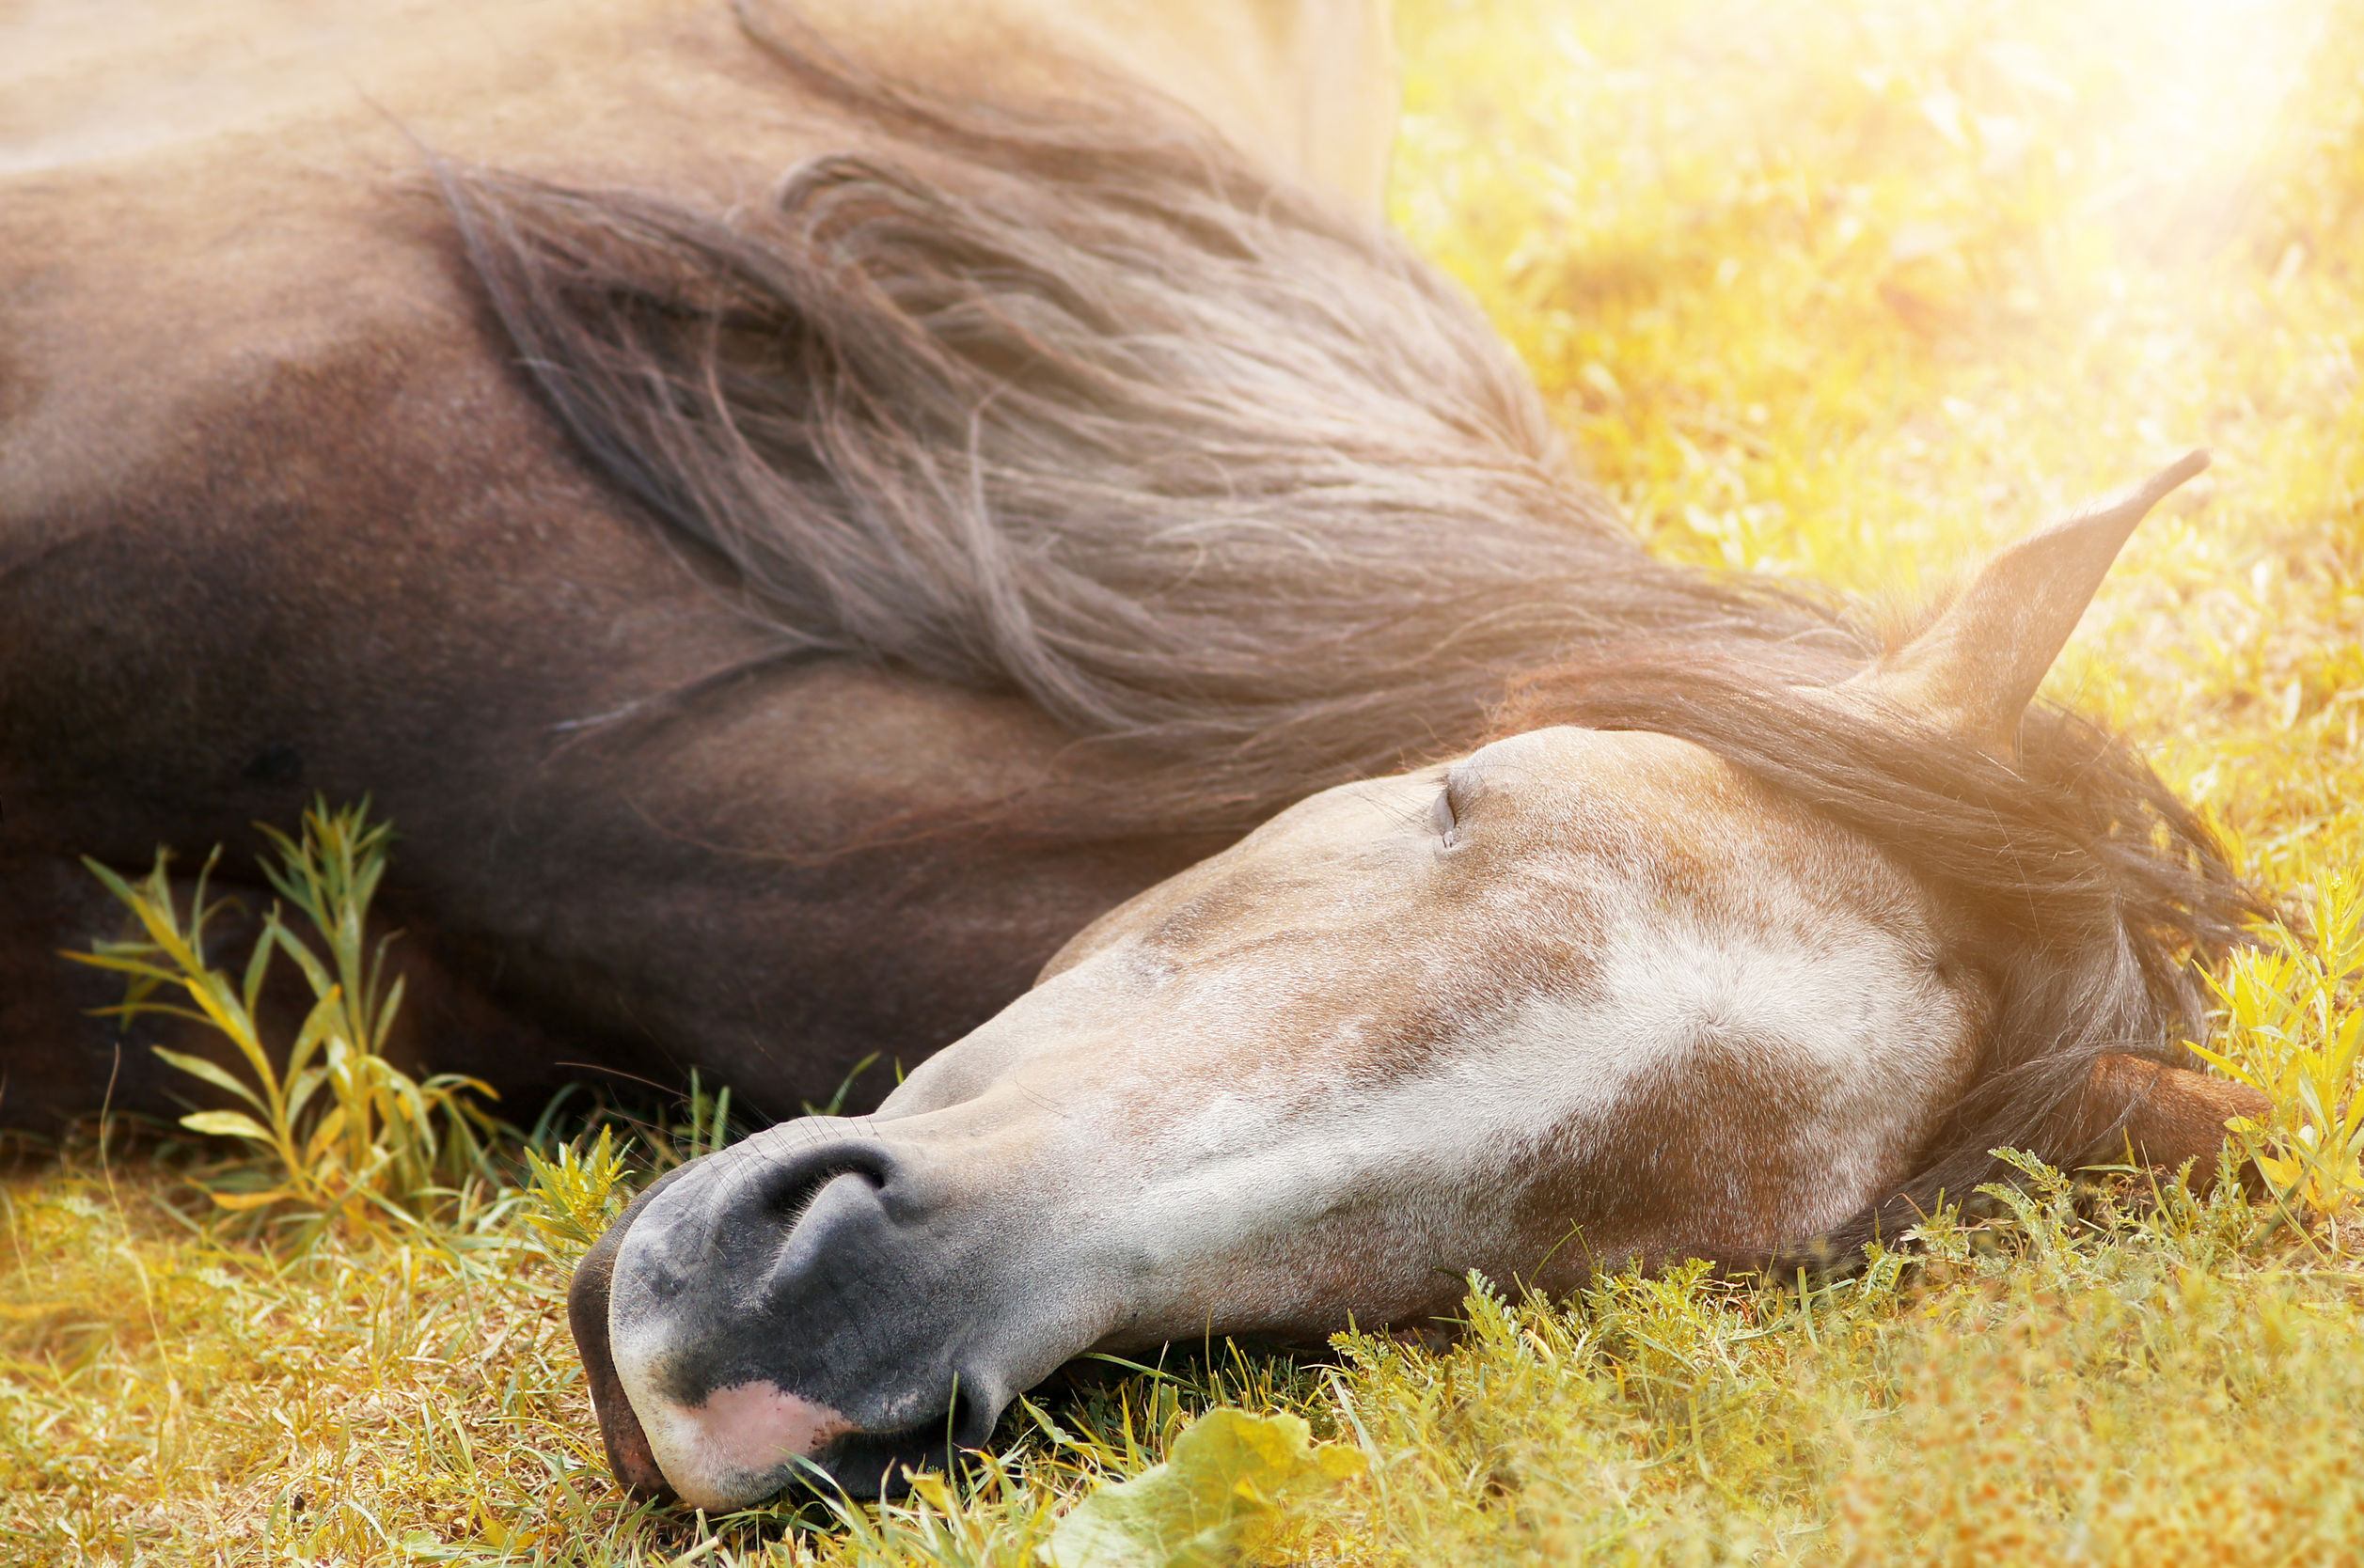 Sleeping horse on autumn grass in sunlight